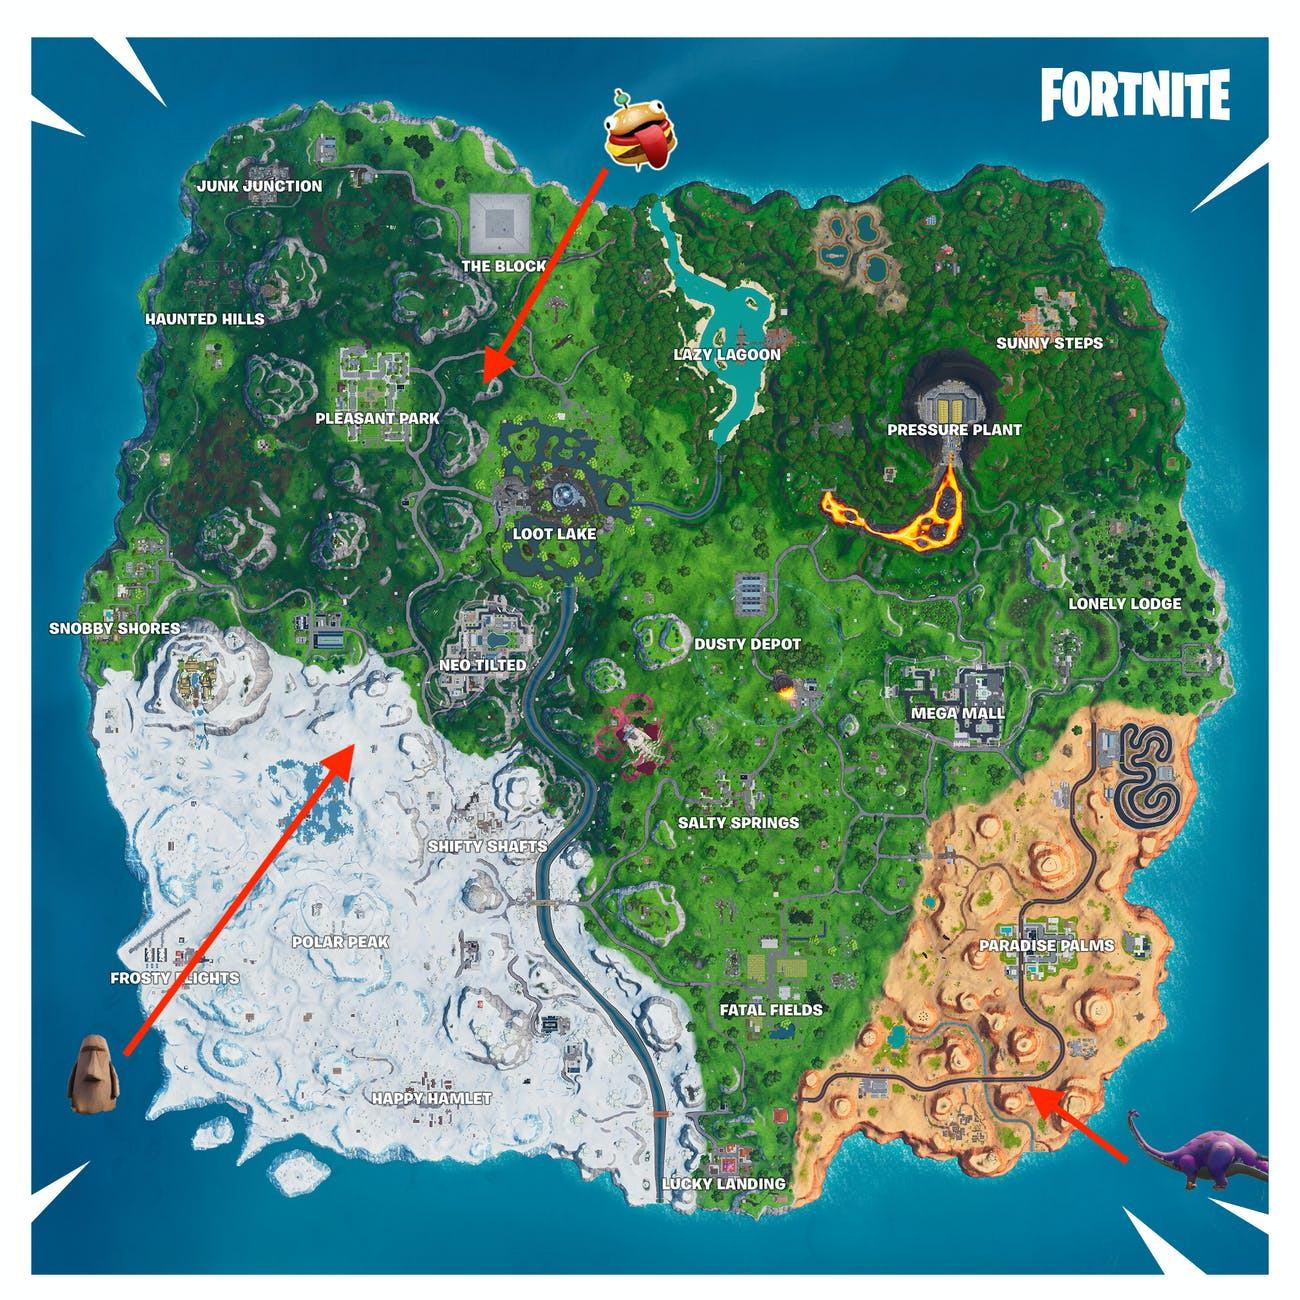 Fortnite Stone Head Statue Locations Season 10 Map Video